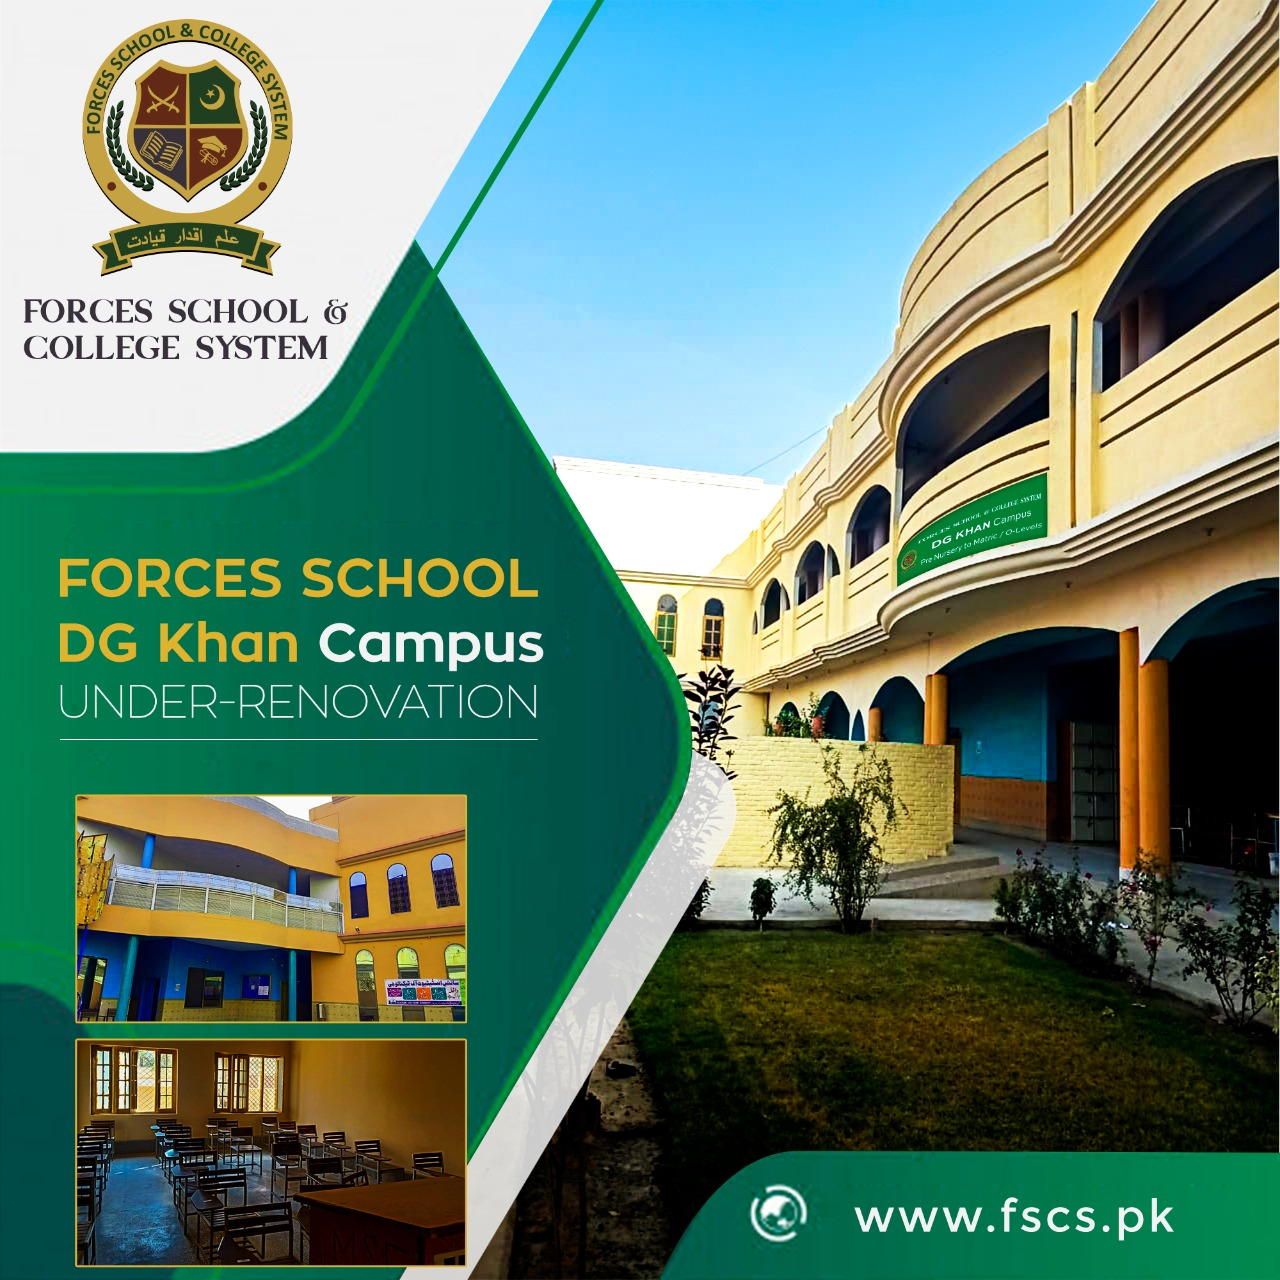 Forces School DG Khan Campus under renovation